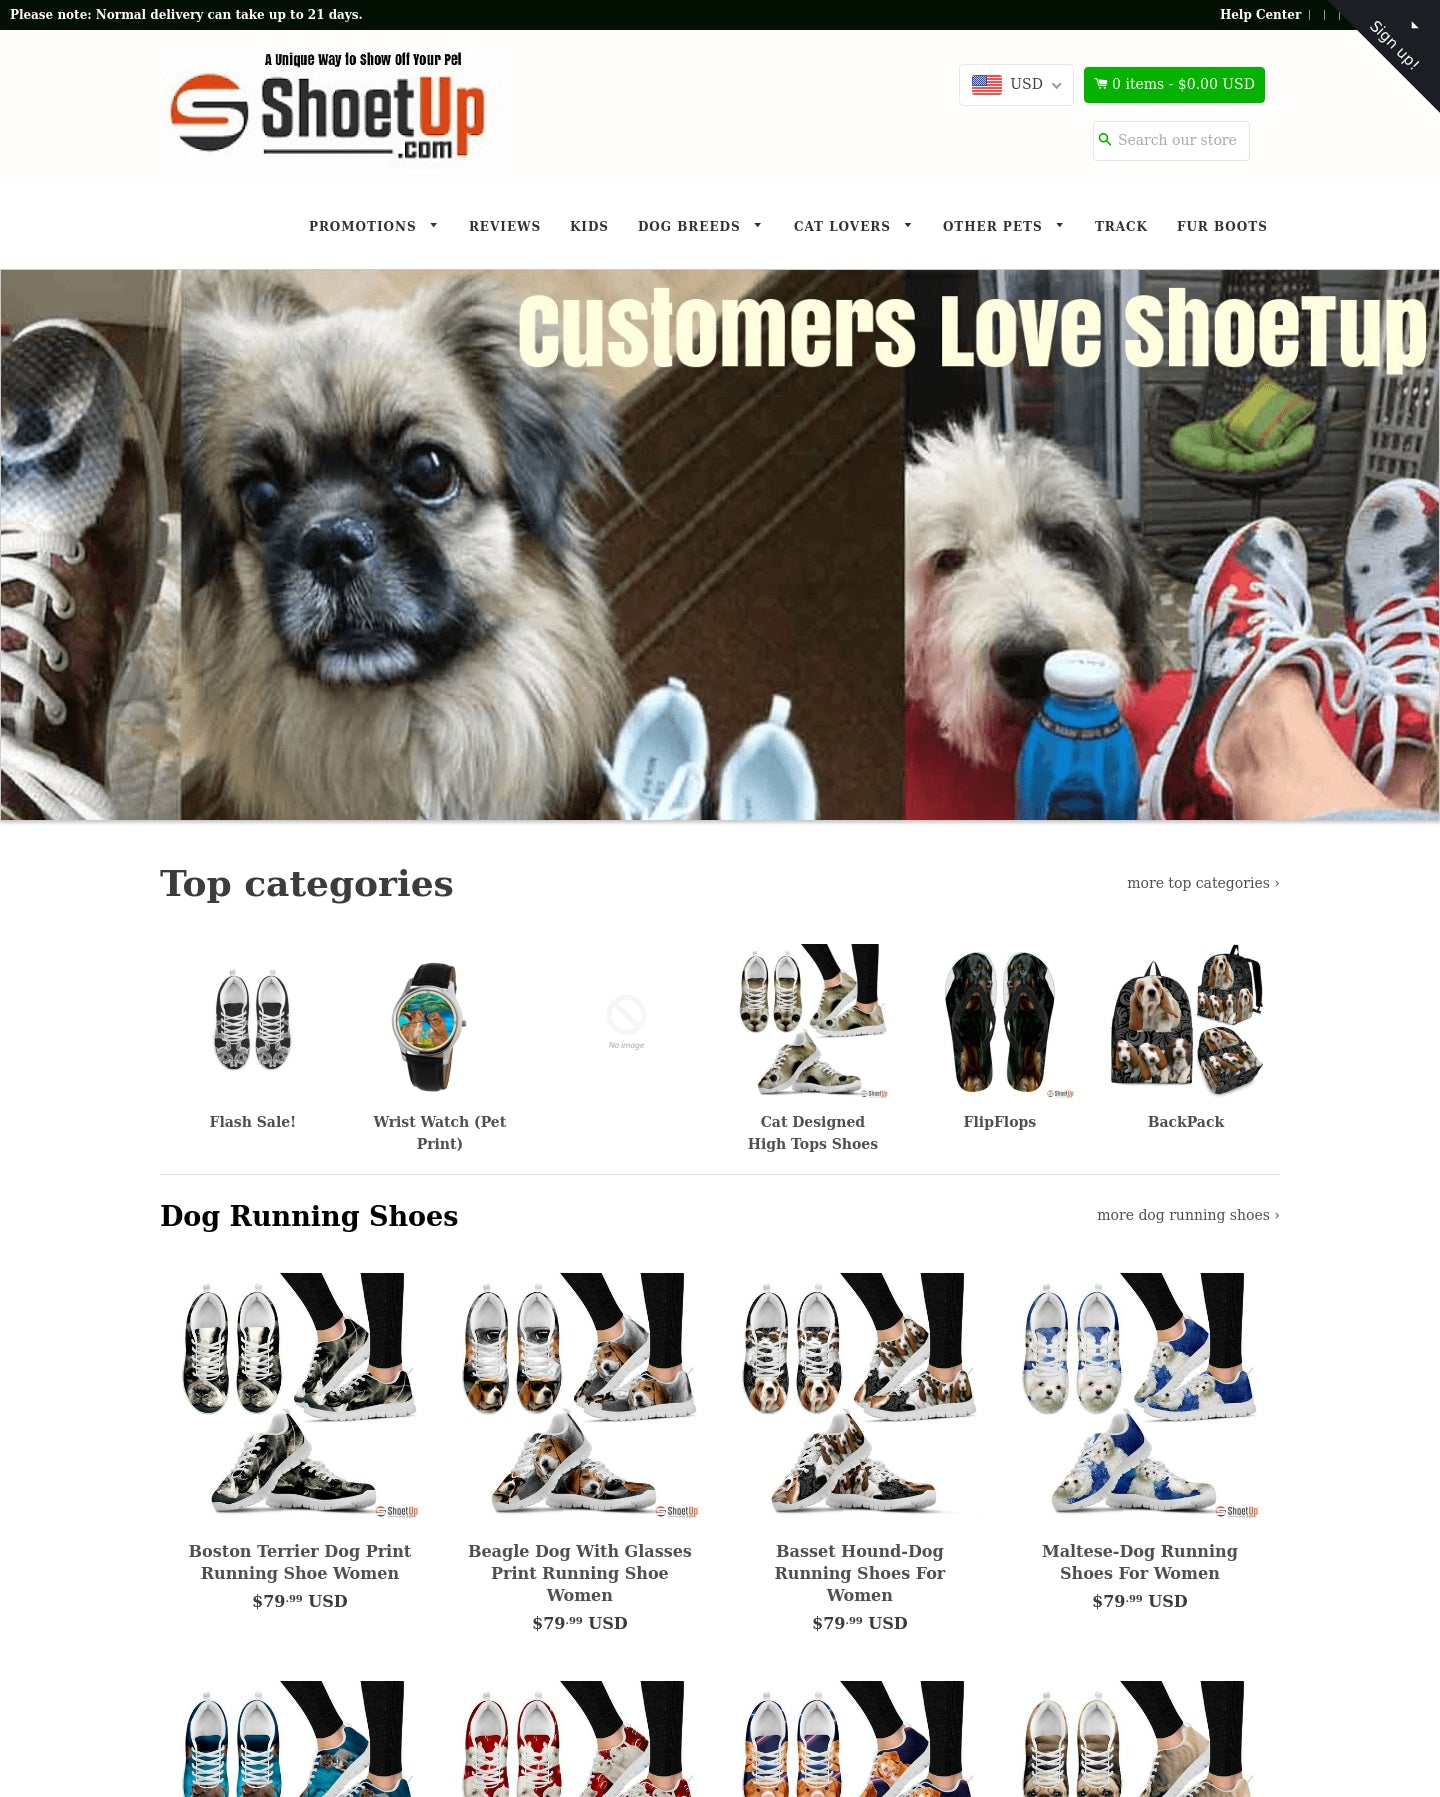 Shoetup Shoes PET Products. Valued at over $50,000. Quit Your Job & Run a Shoe Empire! Screenshot - 1